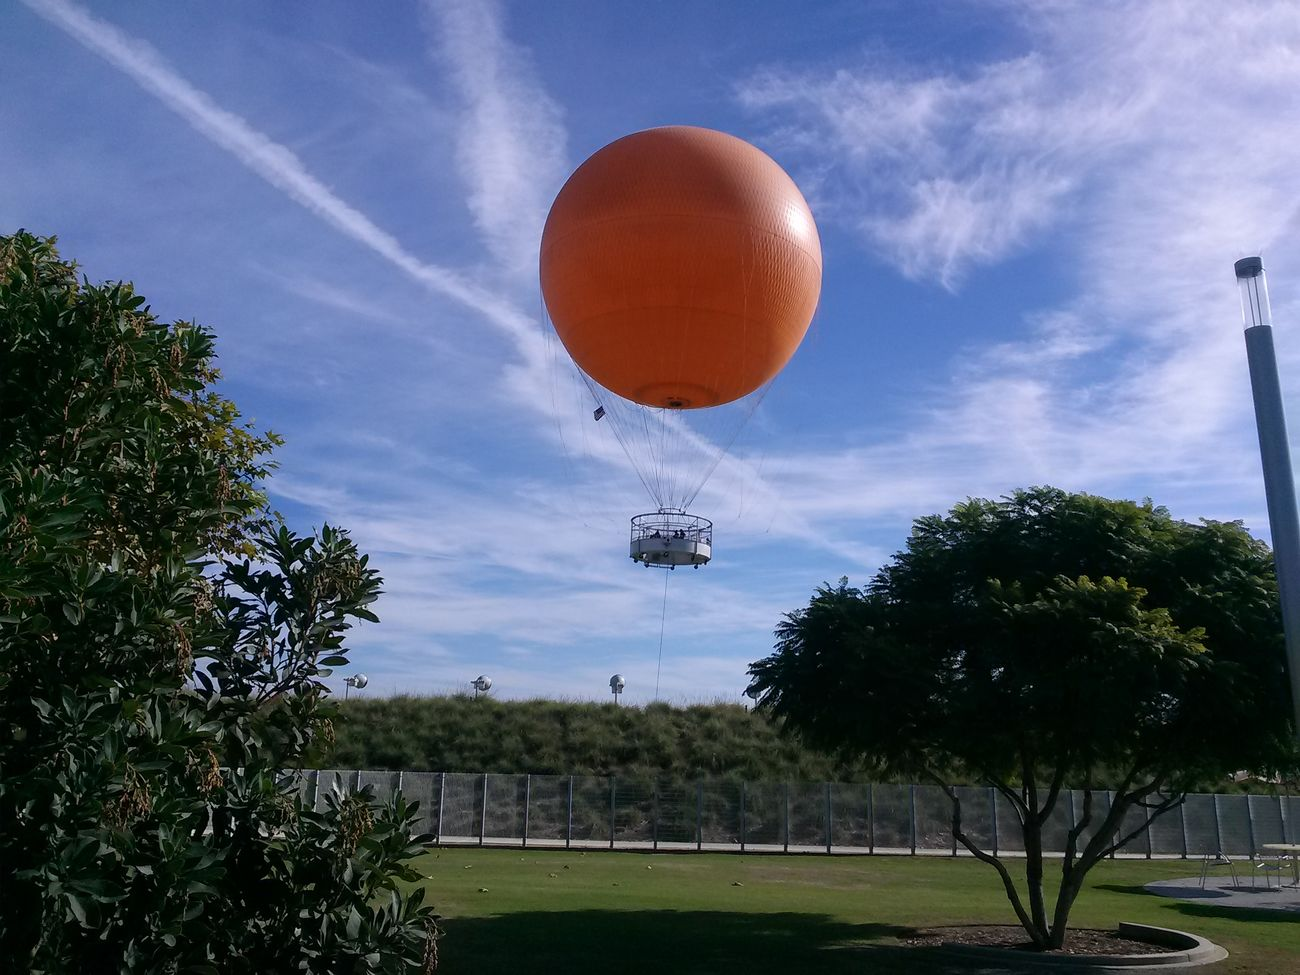 at the Great Park of Orange County, the former grounds for the El Toro Marine Base. in its infancy, the Park is twice the size of Central Park in New York City. the big orange balloon is probably the park's most identifiable feature. for ten dollars you can take a ride up at the rste of 3 feet per second to a height of 400 feet. Hot Air Balloon At The Park Sunday Afternoon Enjoying Life